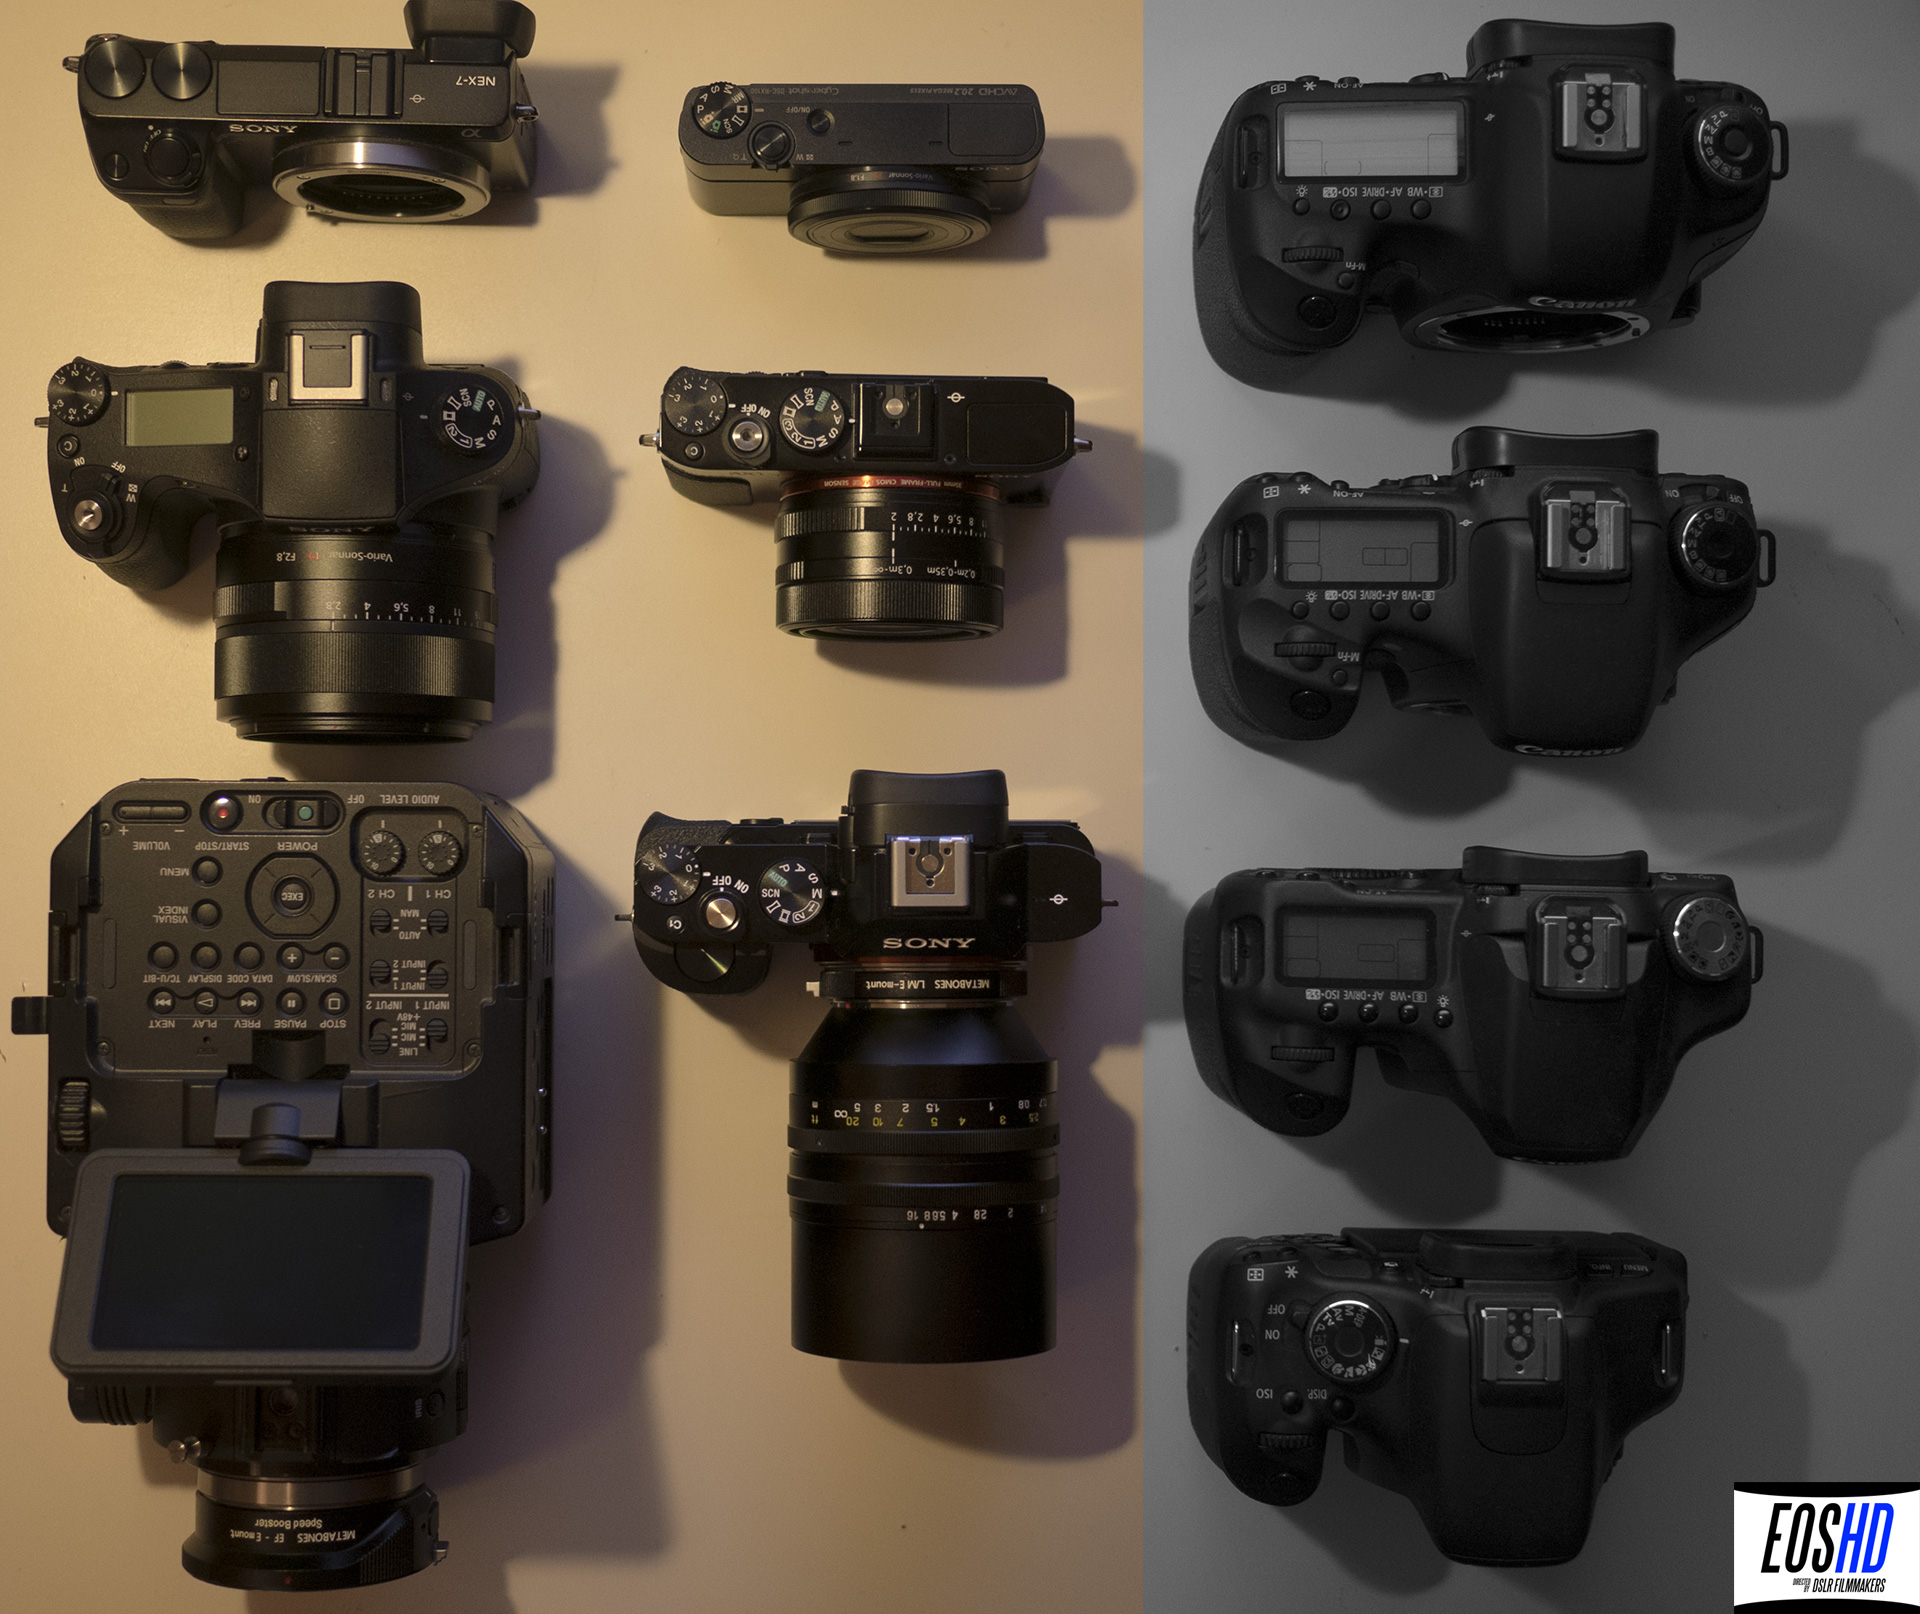 10 questions I'll be asking Canon and Nikon at Photokina - join me